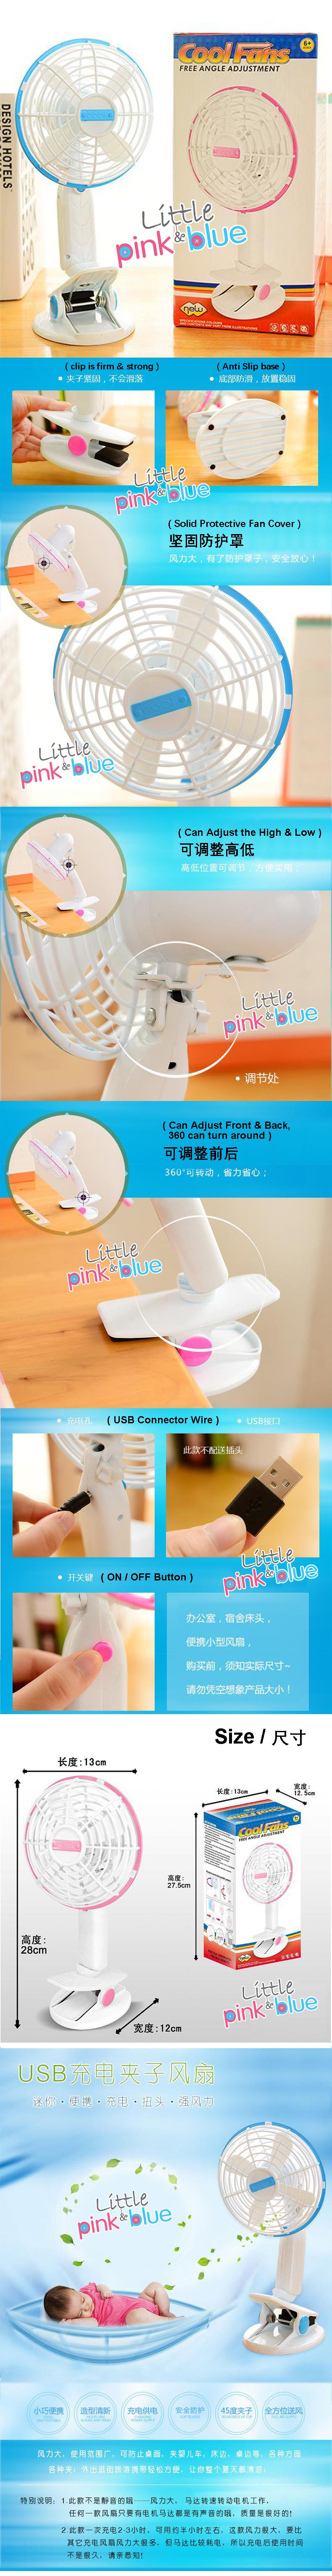 USB Re-chargeble Portable Fan Strong Wind,Adjustable & No need Battery